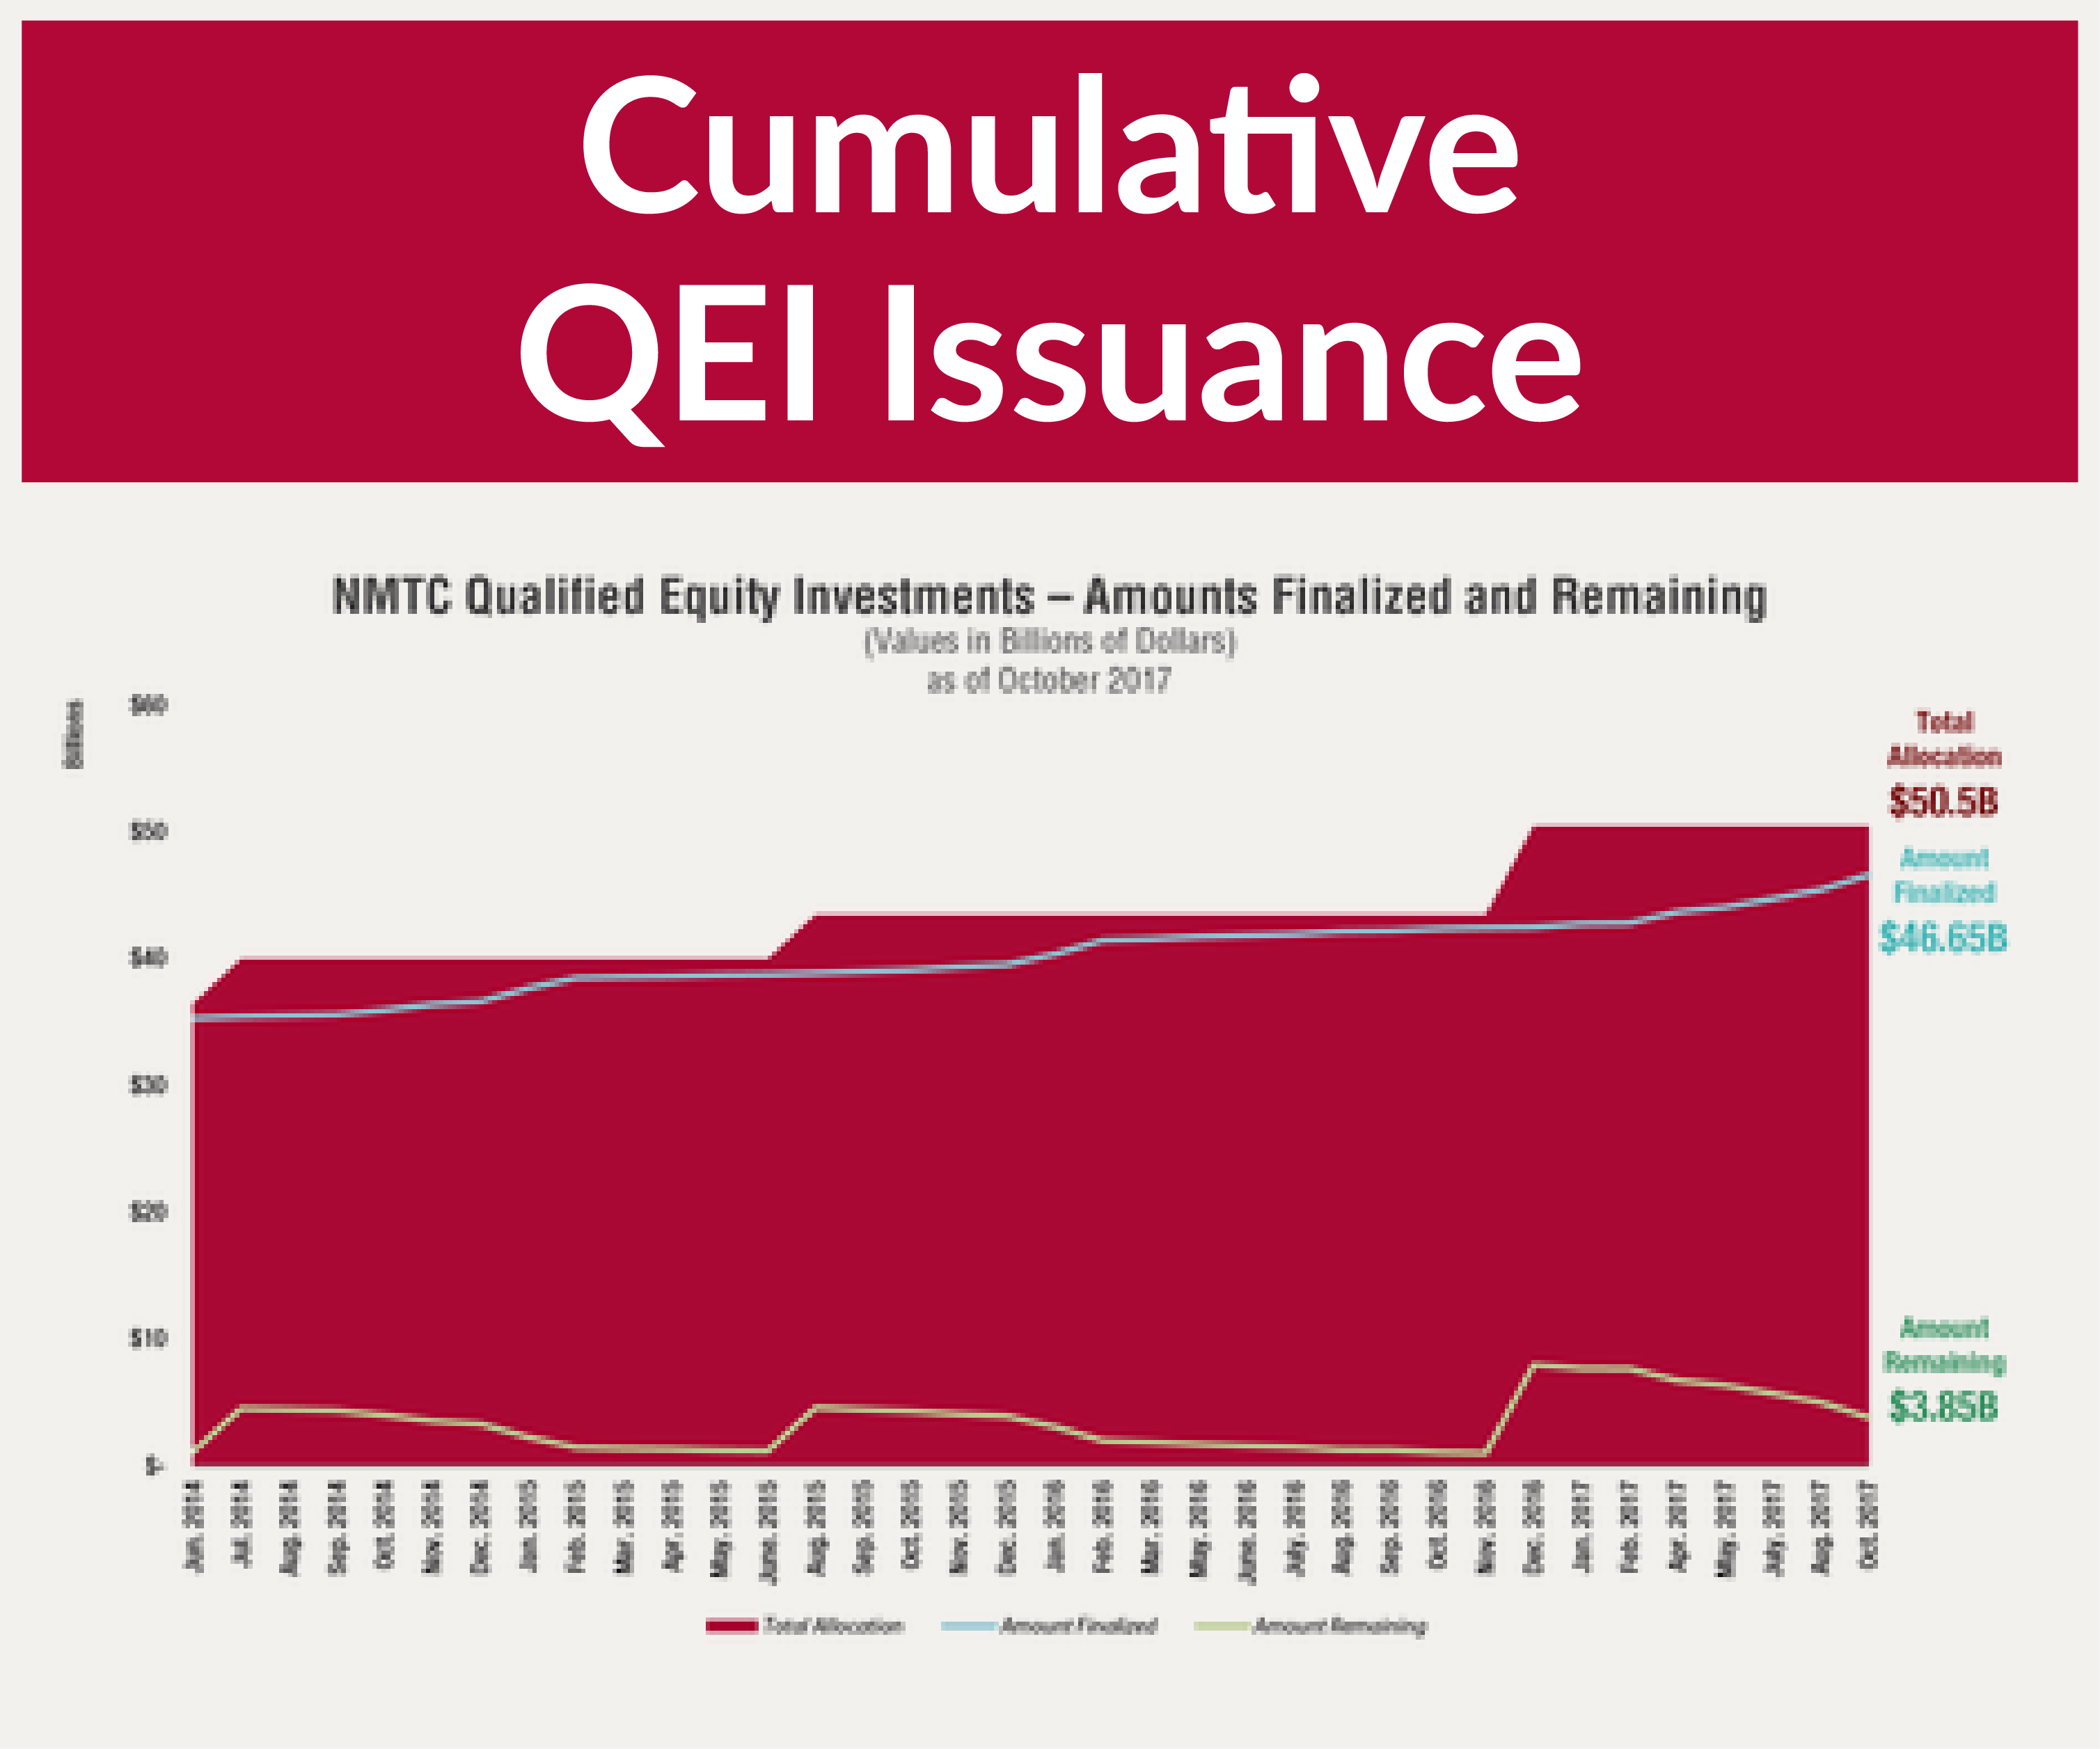 Related Link - NMTC - Cumulative QEI Issuance